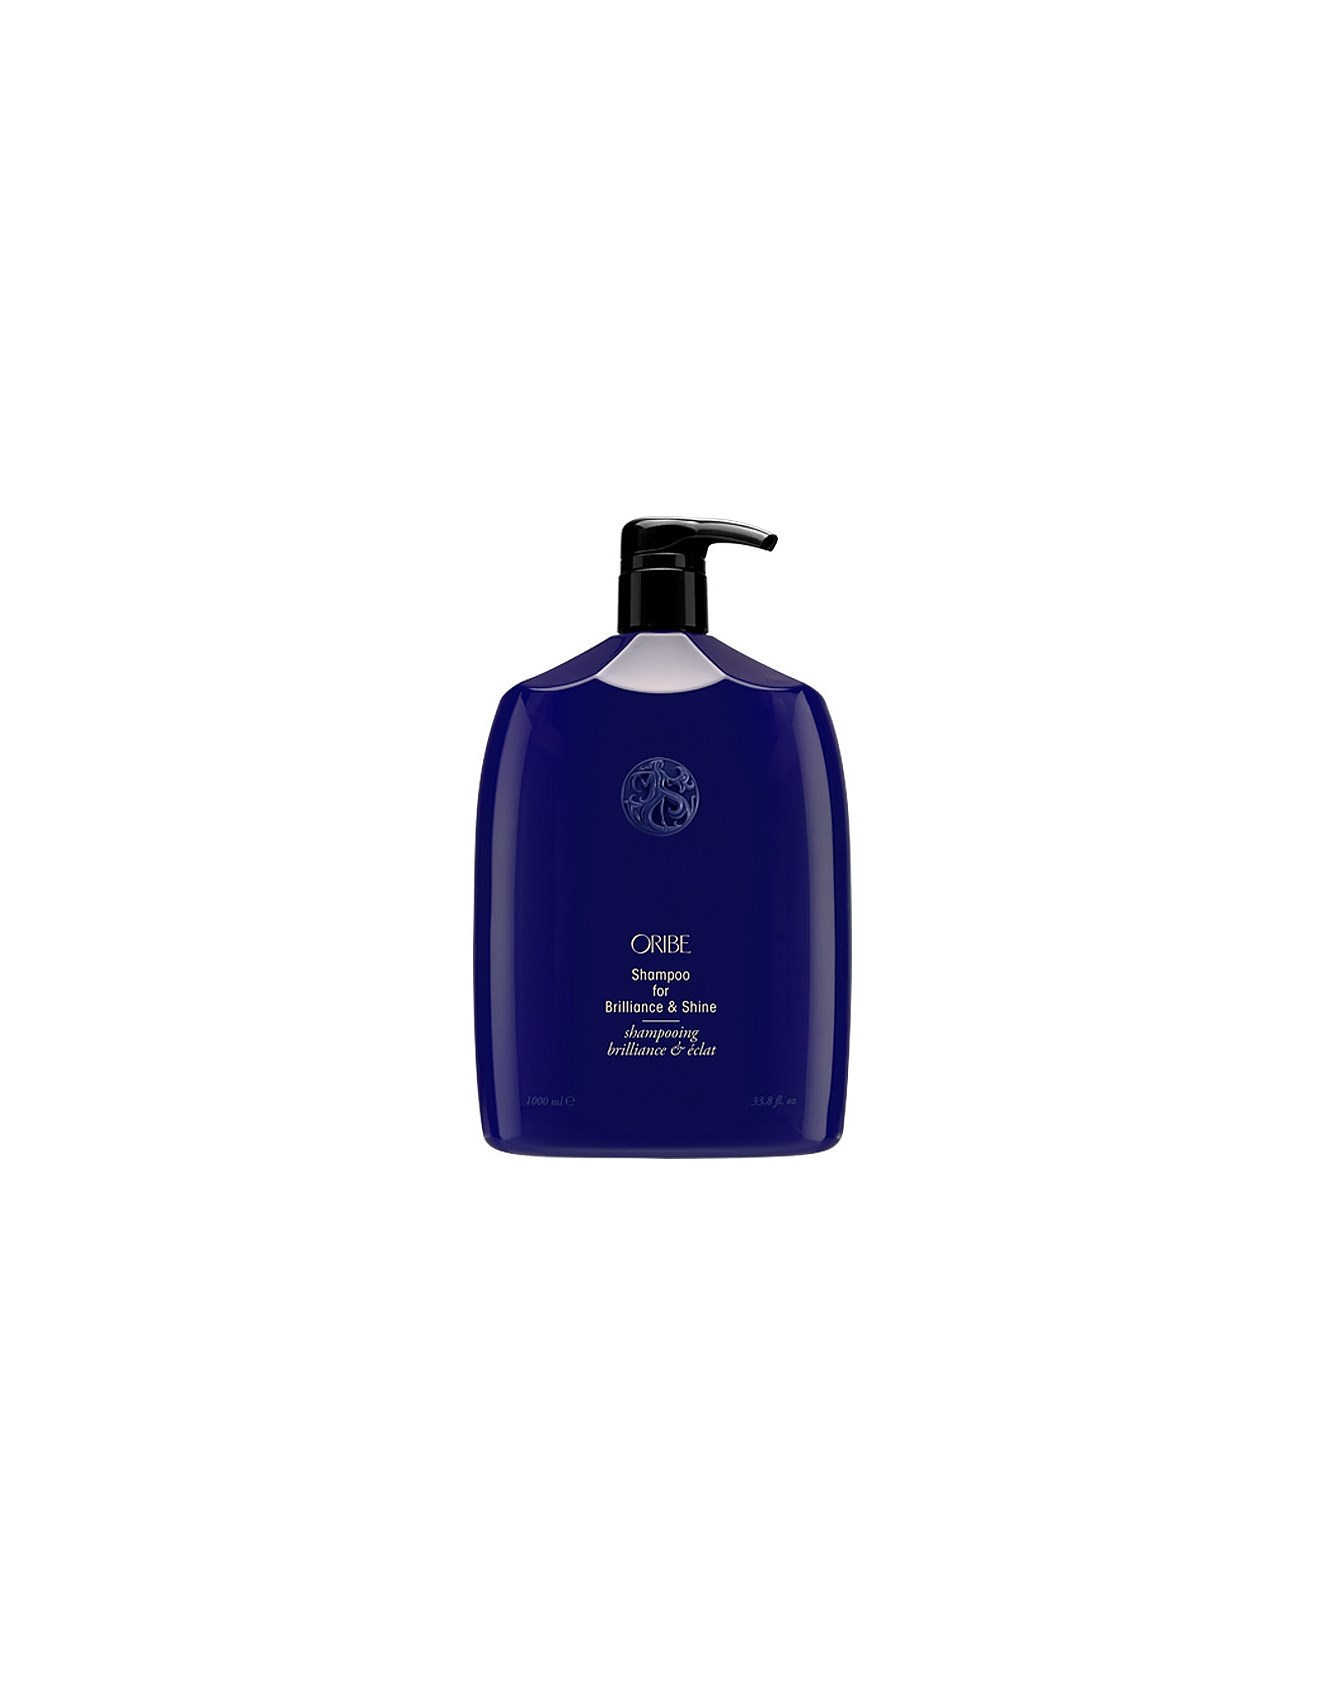 Oribe Shampoo Oribe Oribe Haircare Shampoo More Online David Jones